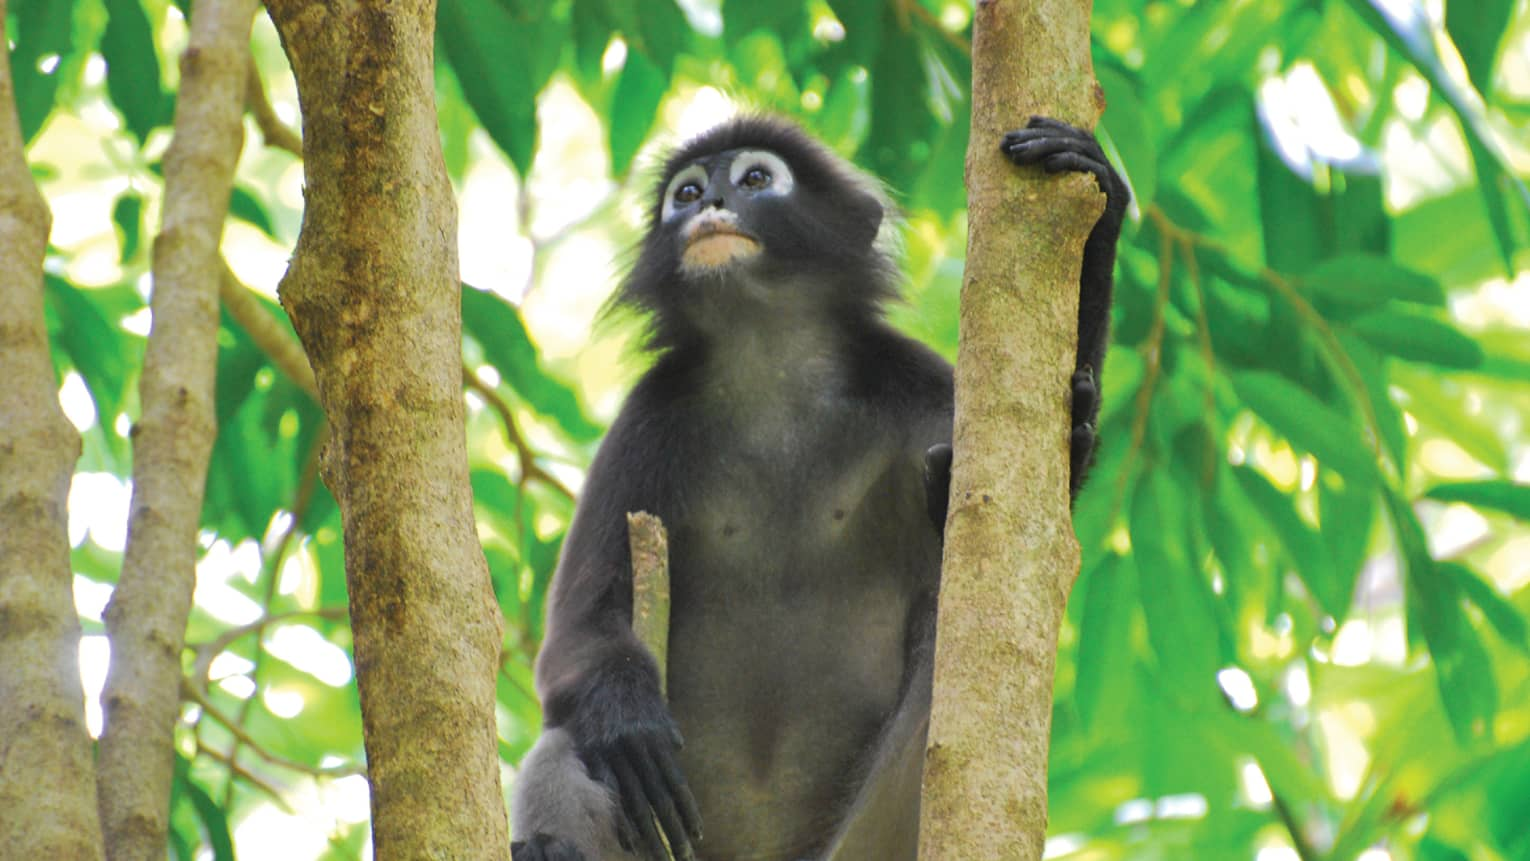 Small Black-and-white leaf monkey sits on branch in tree